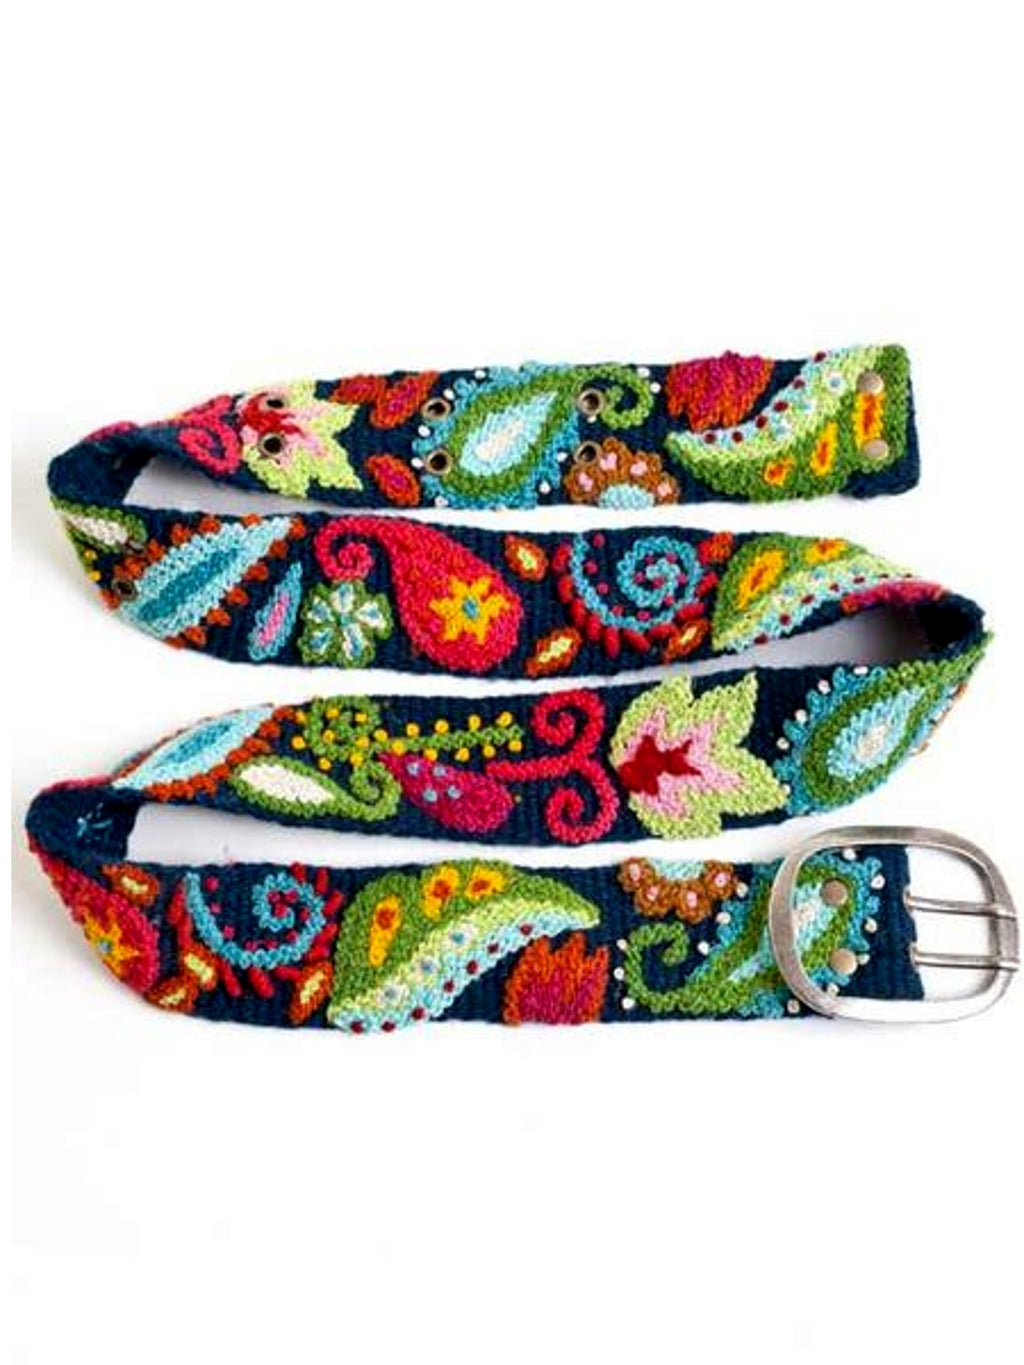 Peruvian Embroidered Belt-Paisley